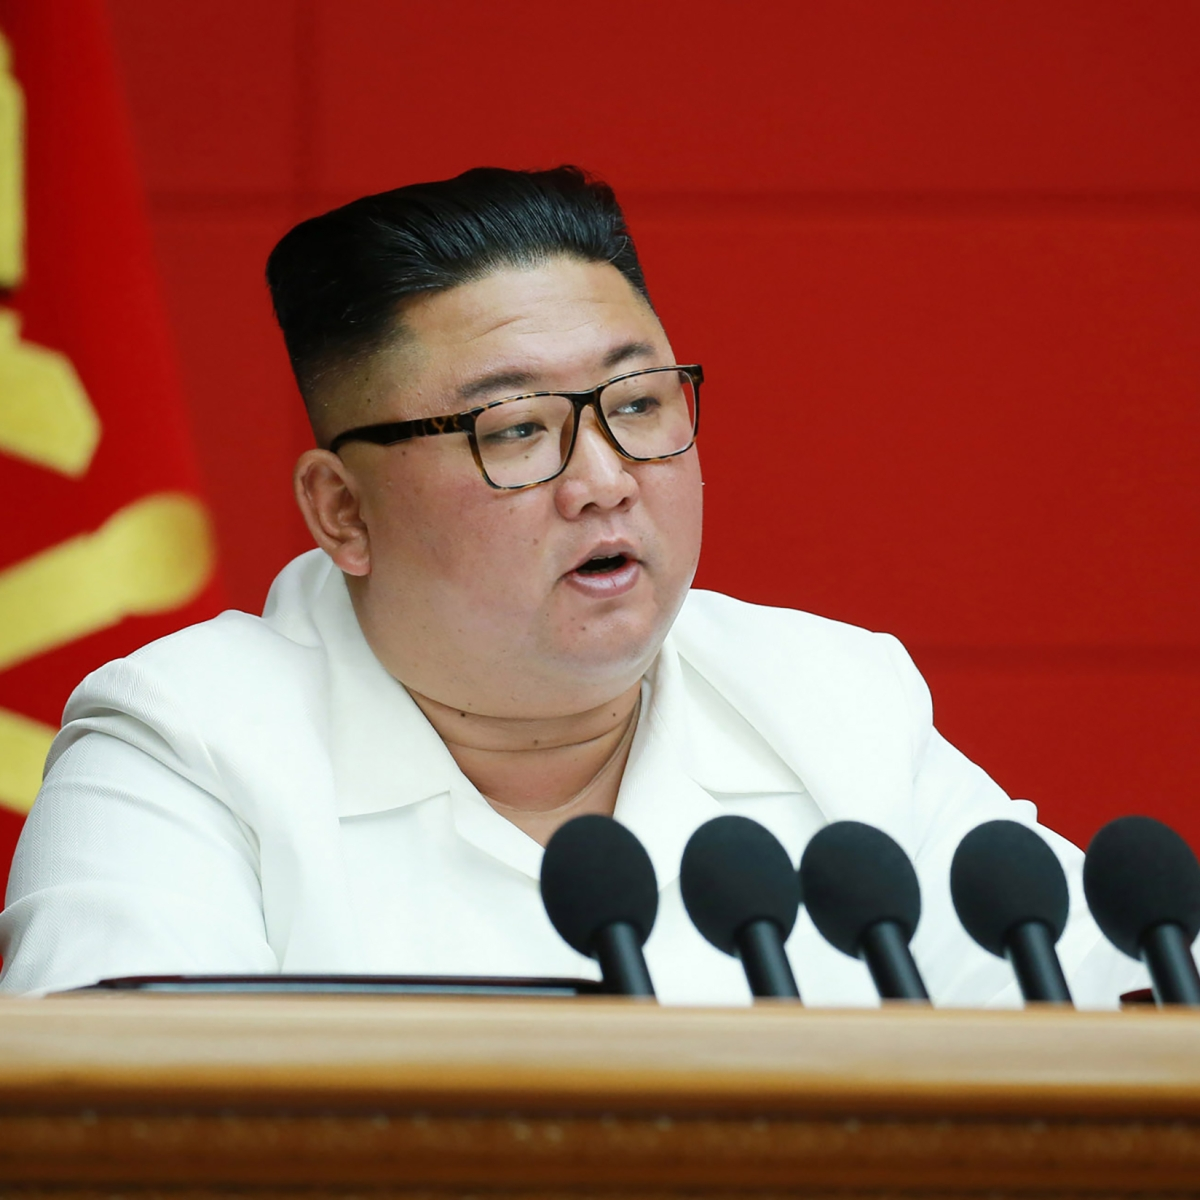 Must not repeat painful lessons, says North Korea's Kim Jong Un as he opens congress with policy failures admission